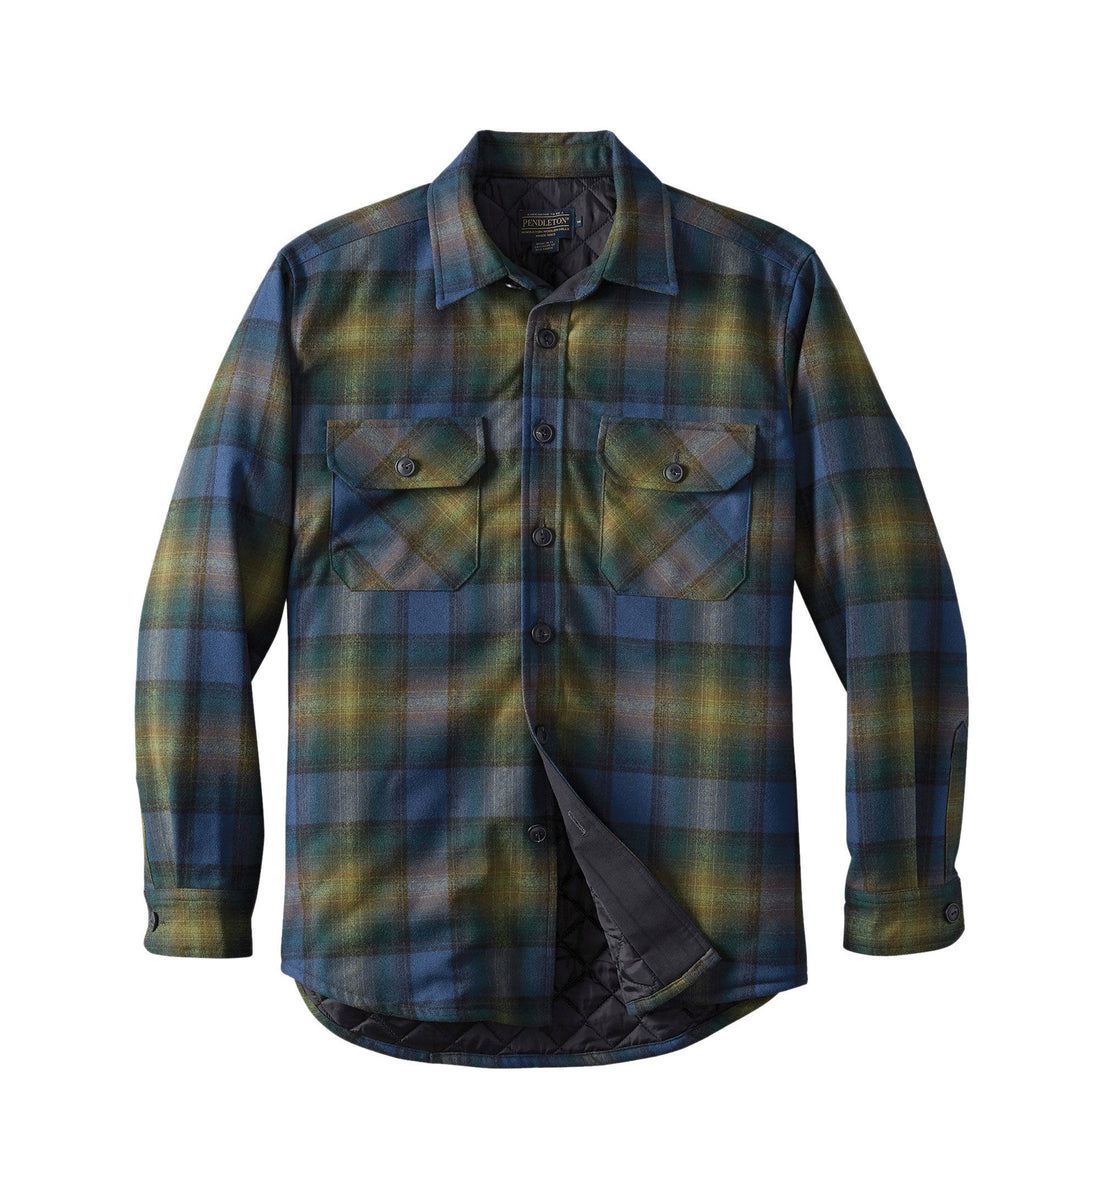 4613030b64f356 ... Pendleton Woolen Mills Quilted CPO Jacket in Wool - Outerwear - Iron  and Resin ...